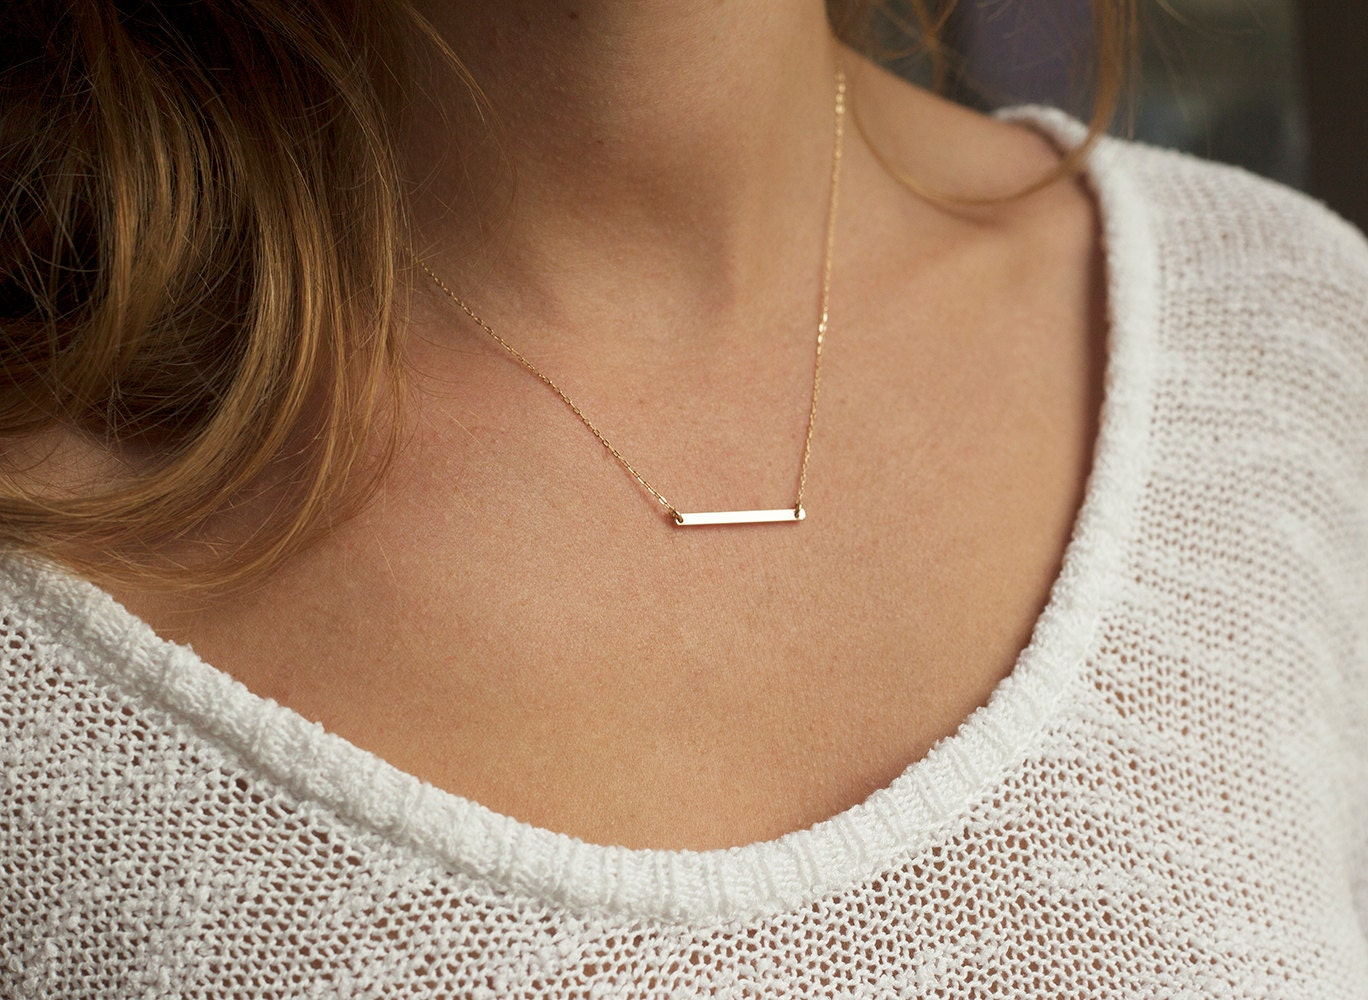 etsy necklace gold horizontal com everyday ori now details buy simple bar from